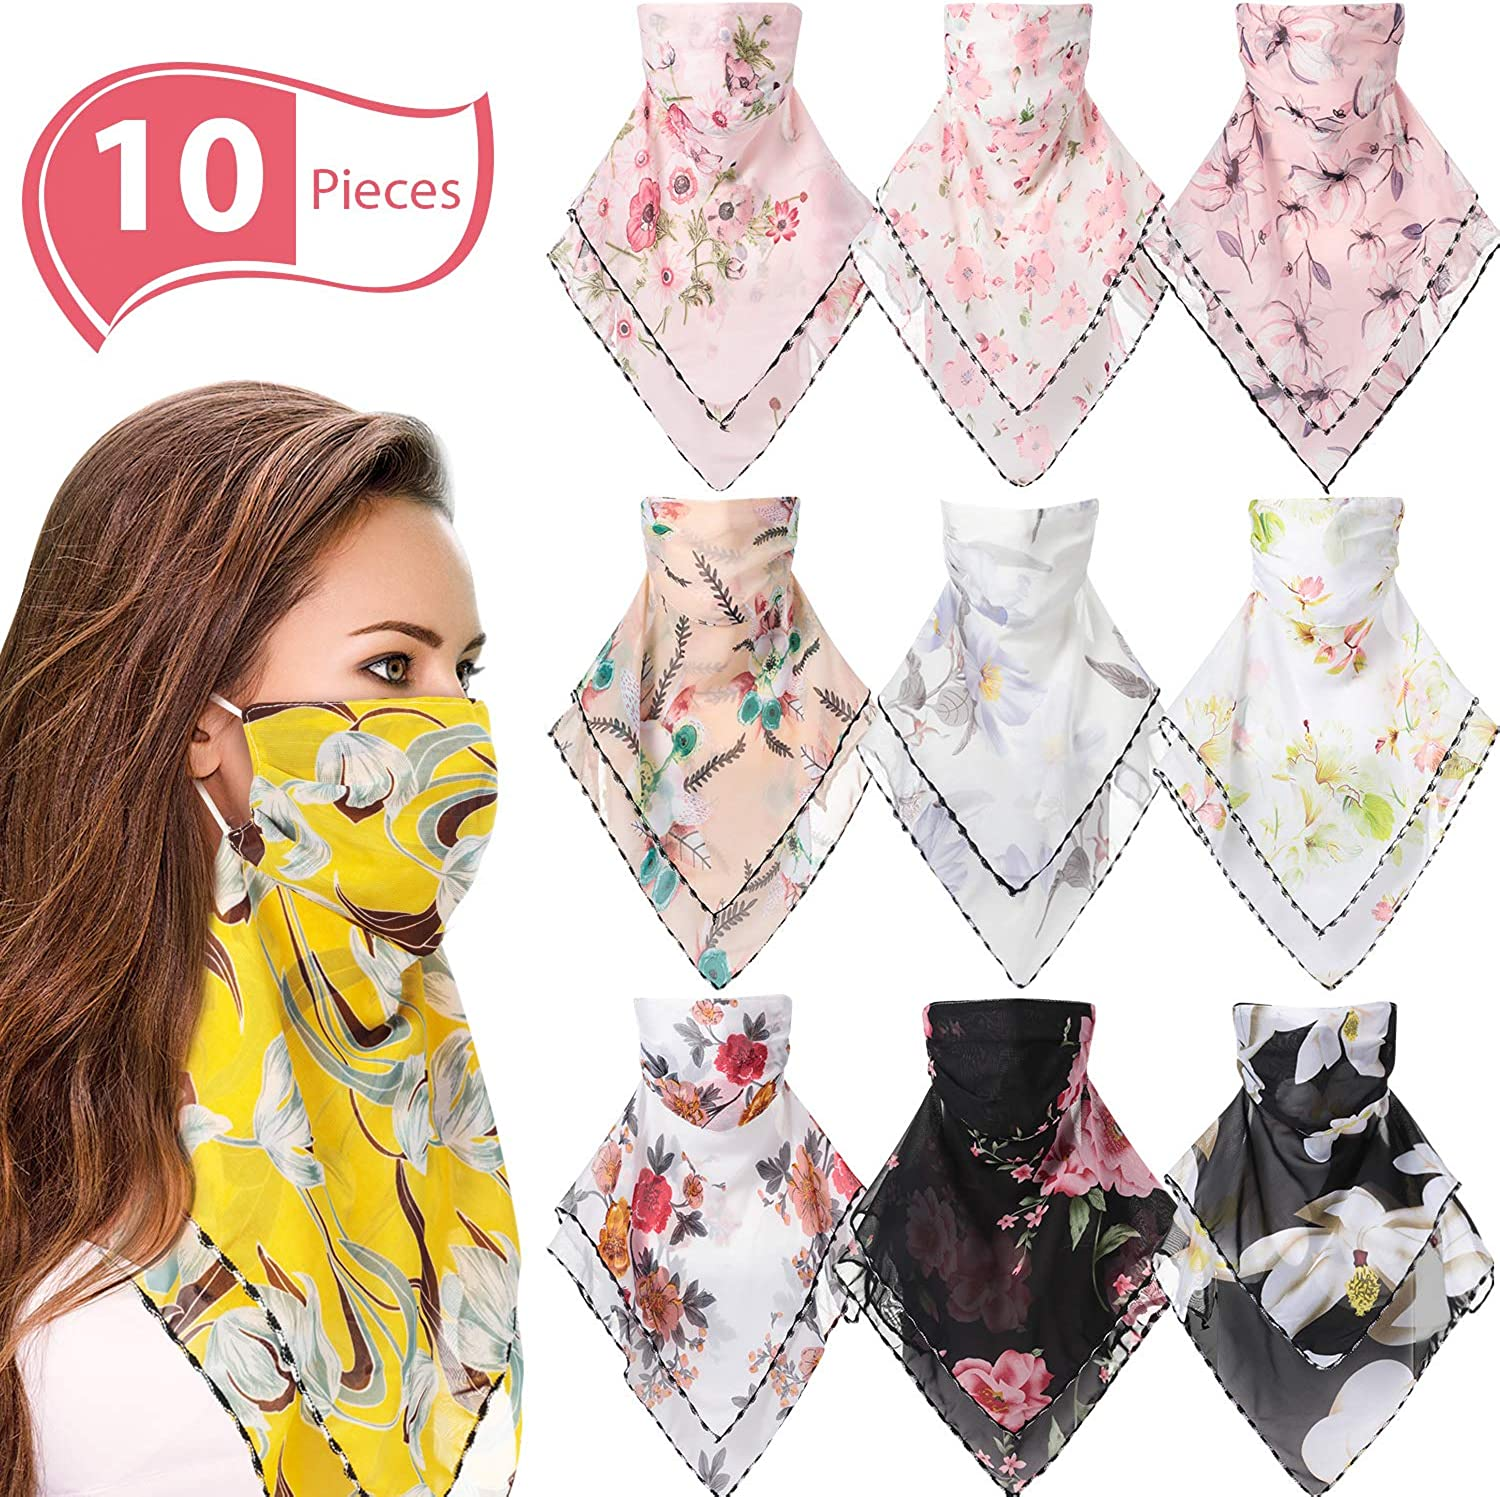 SATINIOR 10 Pack Chiffon Face Scarf Ear-Hanging Outdoor Sunscreen Headwear Breathable Bandana Neck Gaiter Sun UV Protection Face Cover for Women Outdoor Sports, As Pictures Shown, 18 x 18 inch/ 45 x 45 cm: Clothing